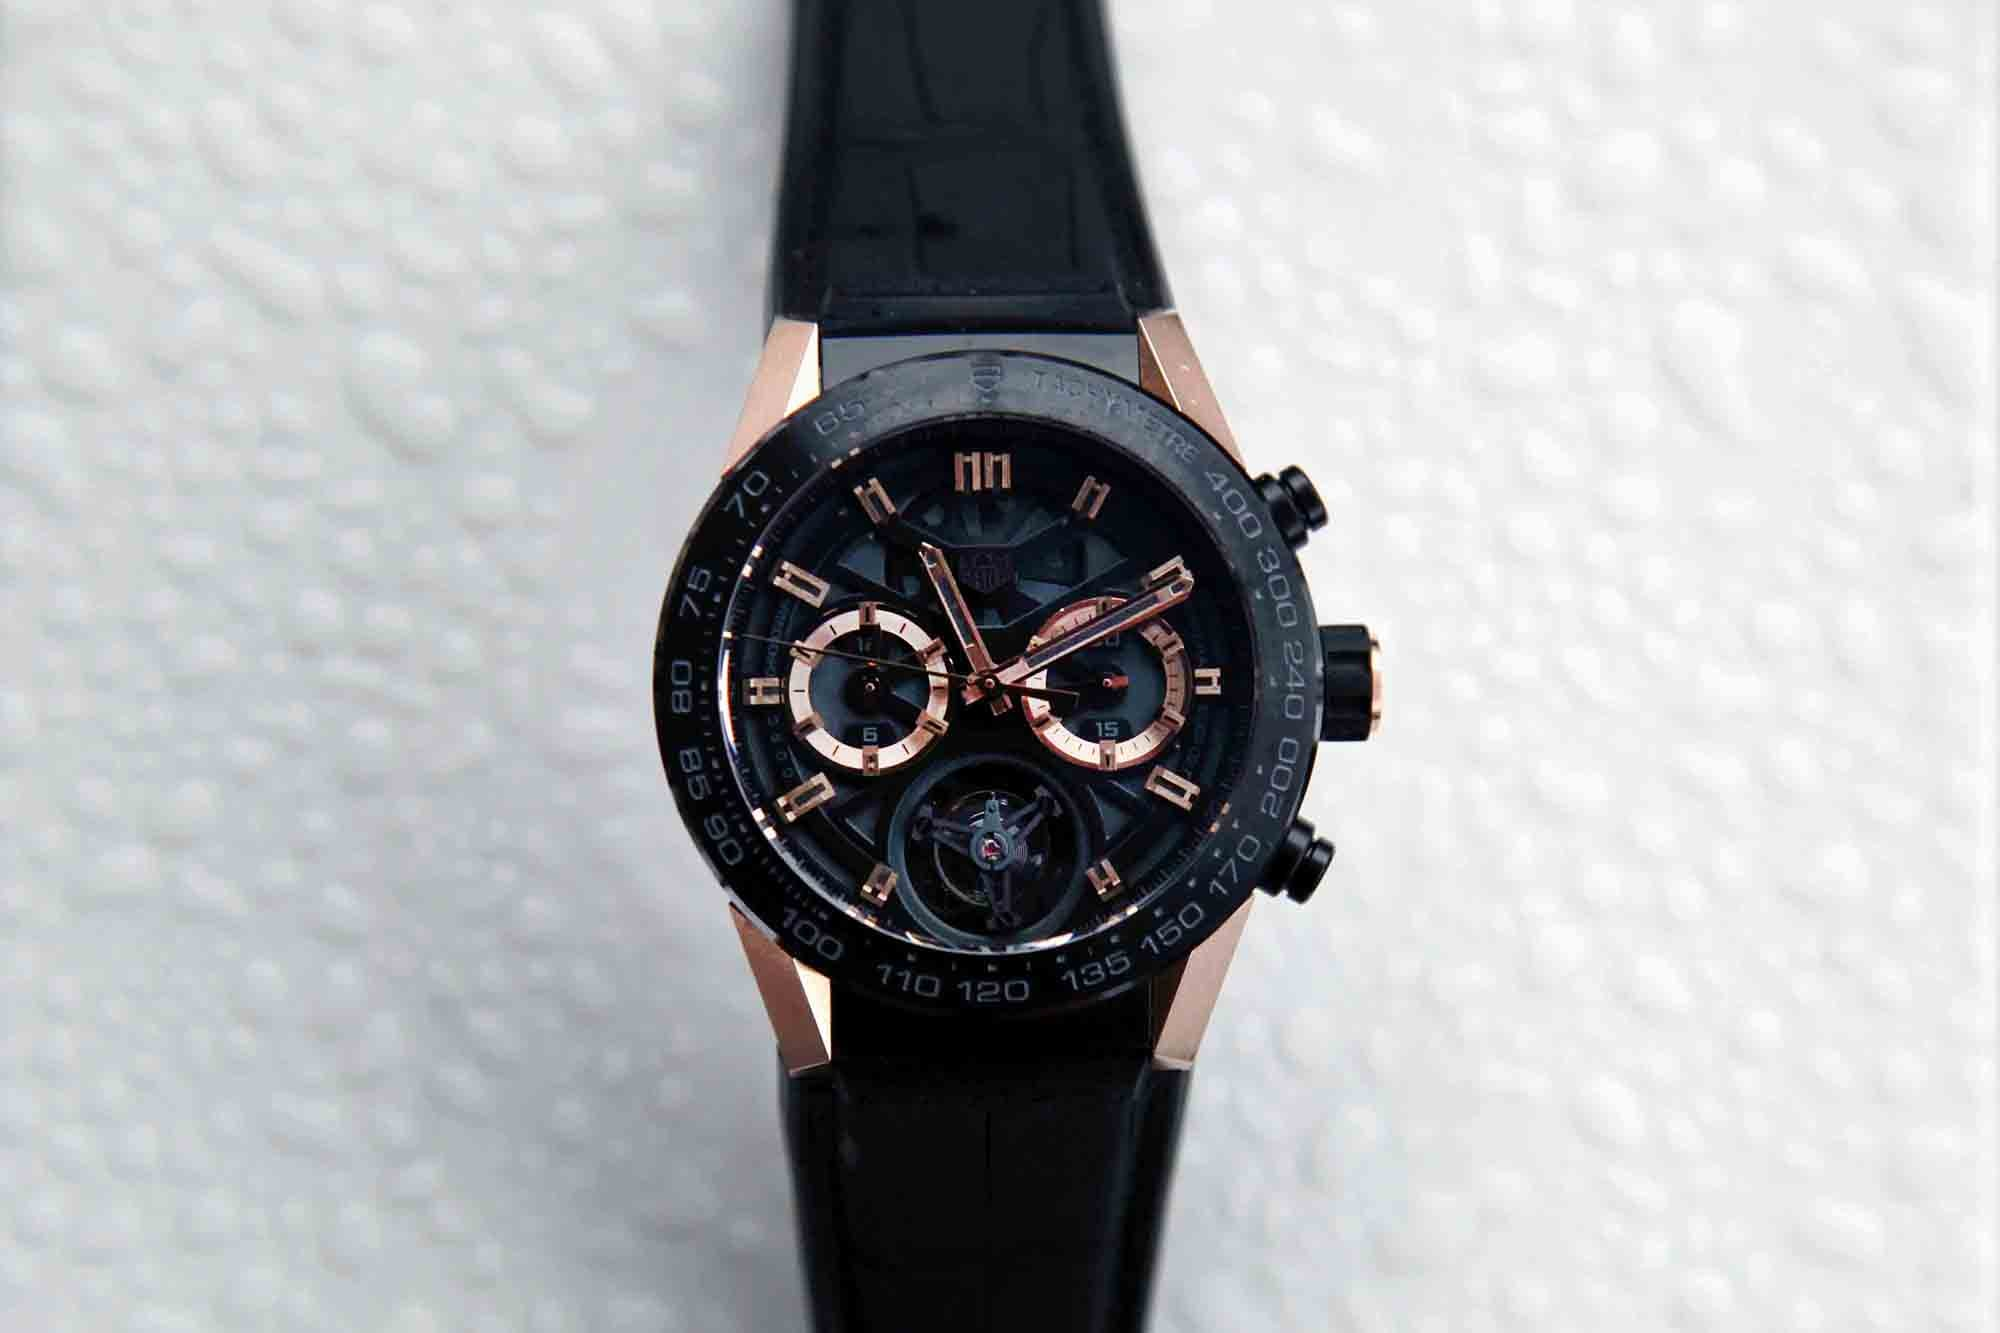 The TAG Heuer Carrera-02T, in rose gold.  Photo Report: Behind The Scenes At The Monaco Grand Prix 2016 With TAG Heuer CEO Jean-Claude Biver Photo Report: Behind The Scenes At The Monaco Grand Prix 2016 With TAG Heuer CEO Jean-Claude Biver d